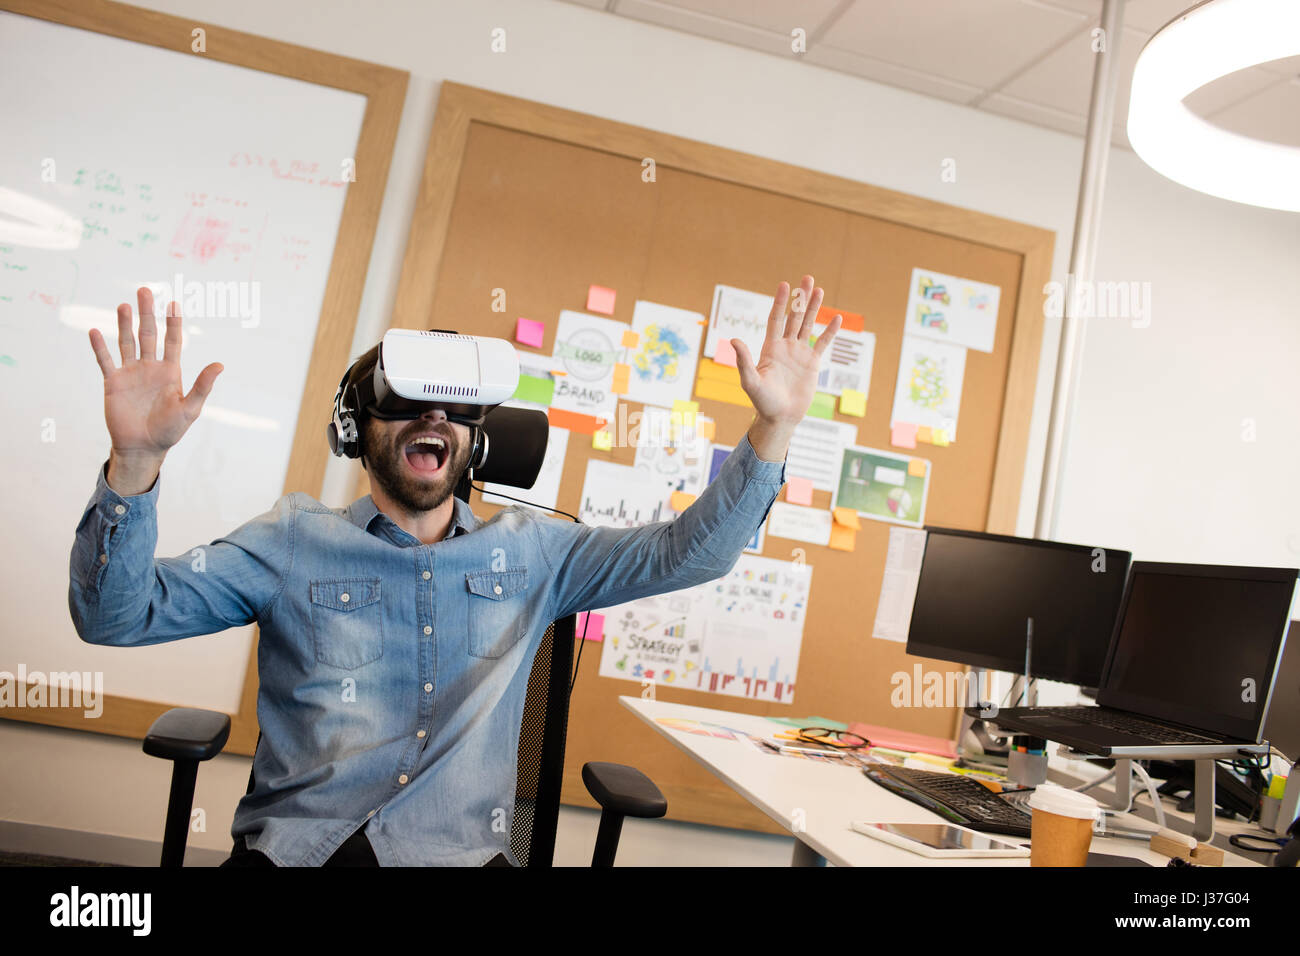 Businessman screaming while experiencing virtual reality in modern office - Stock Image